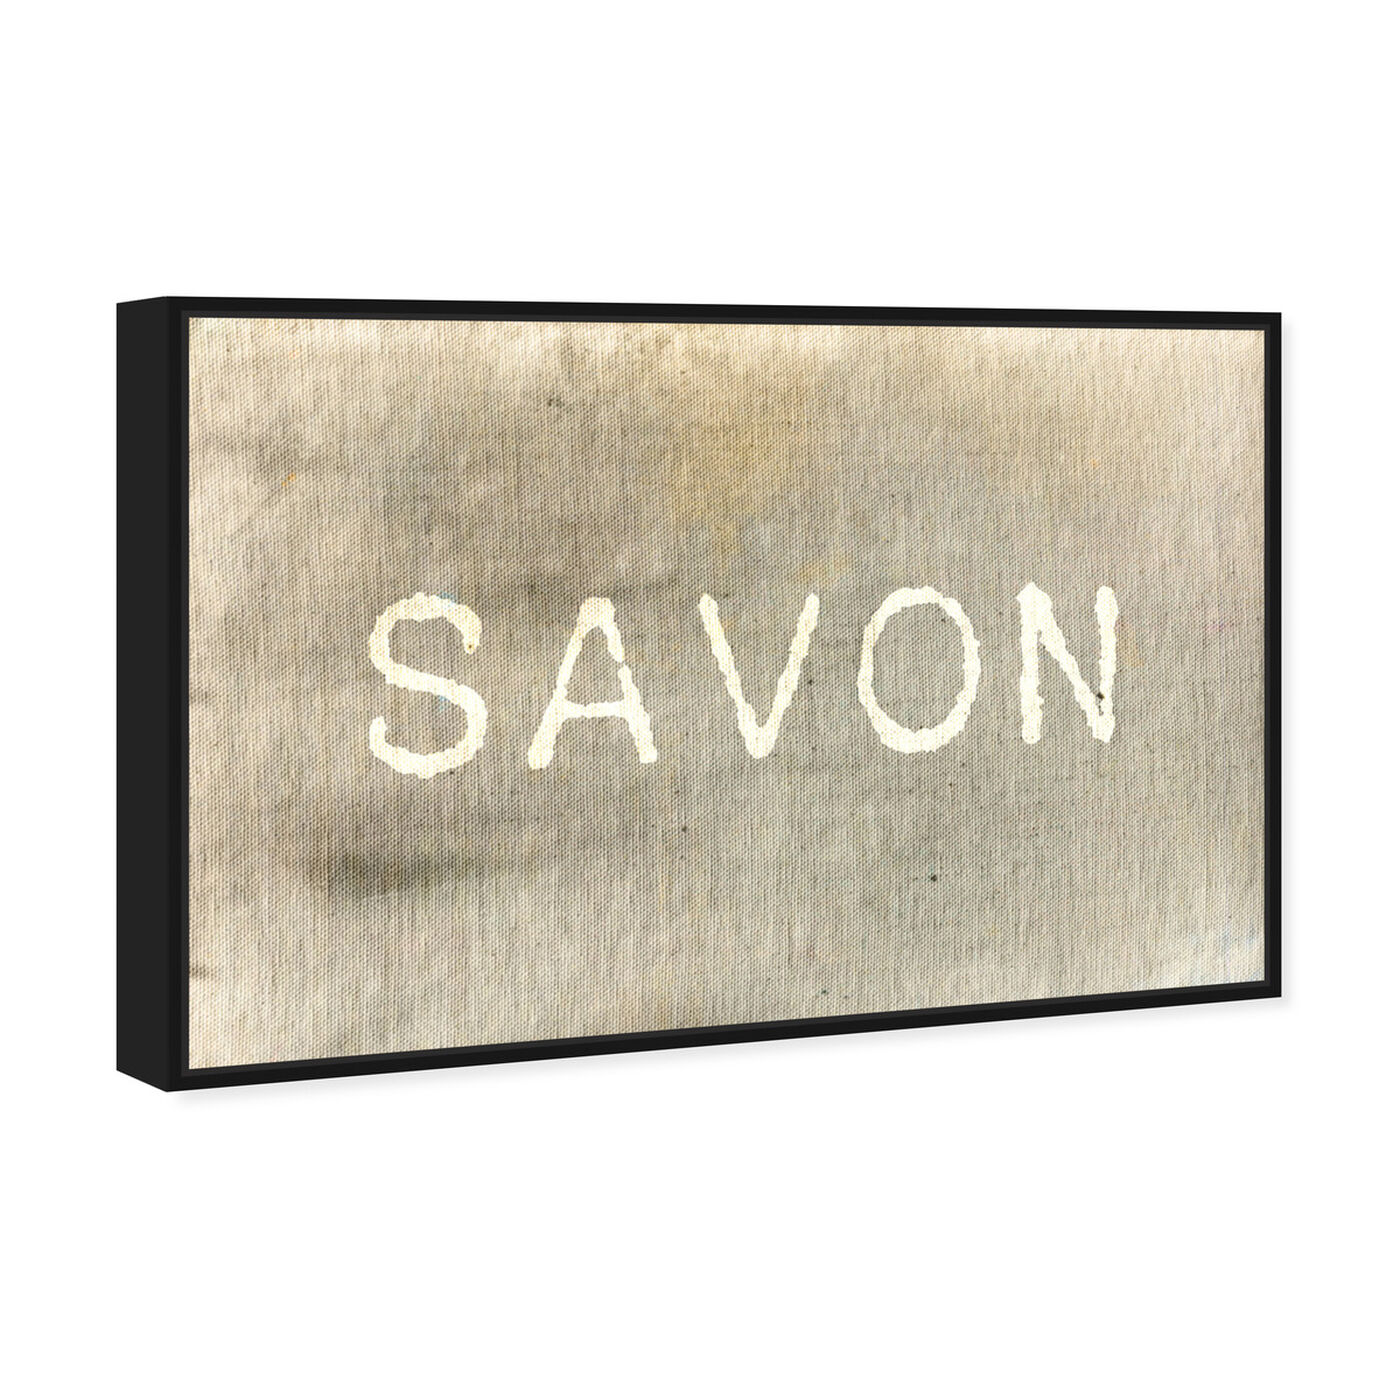 Angled view of Savon featuring typography and quotes and quotes and sayings art.